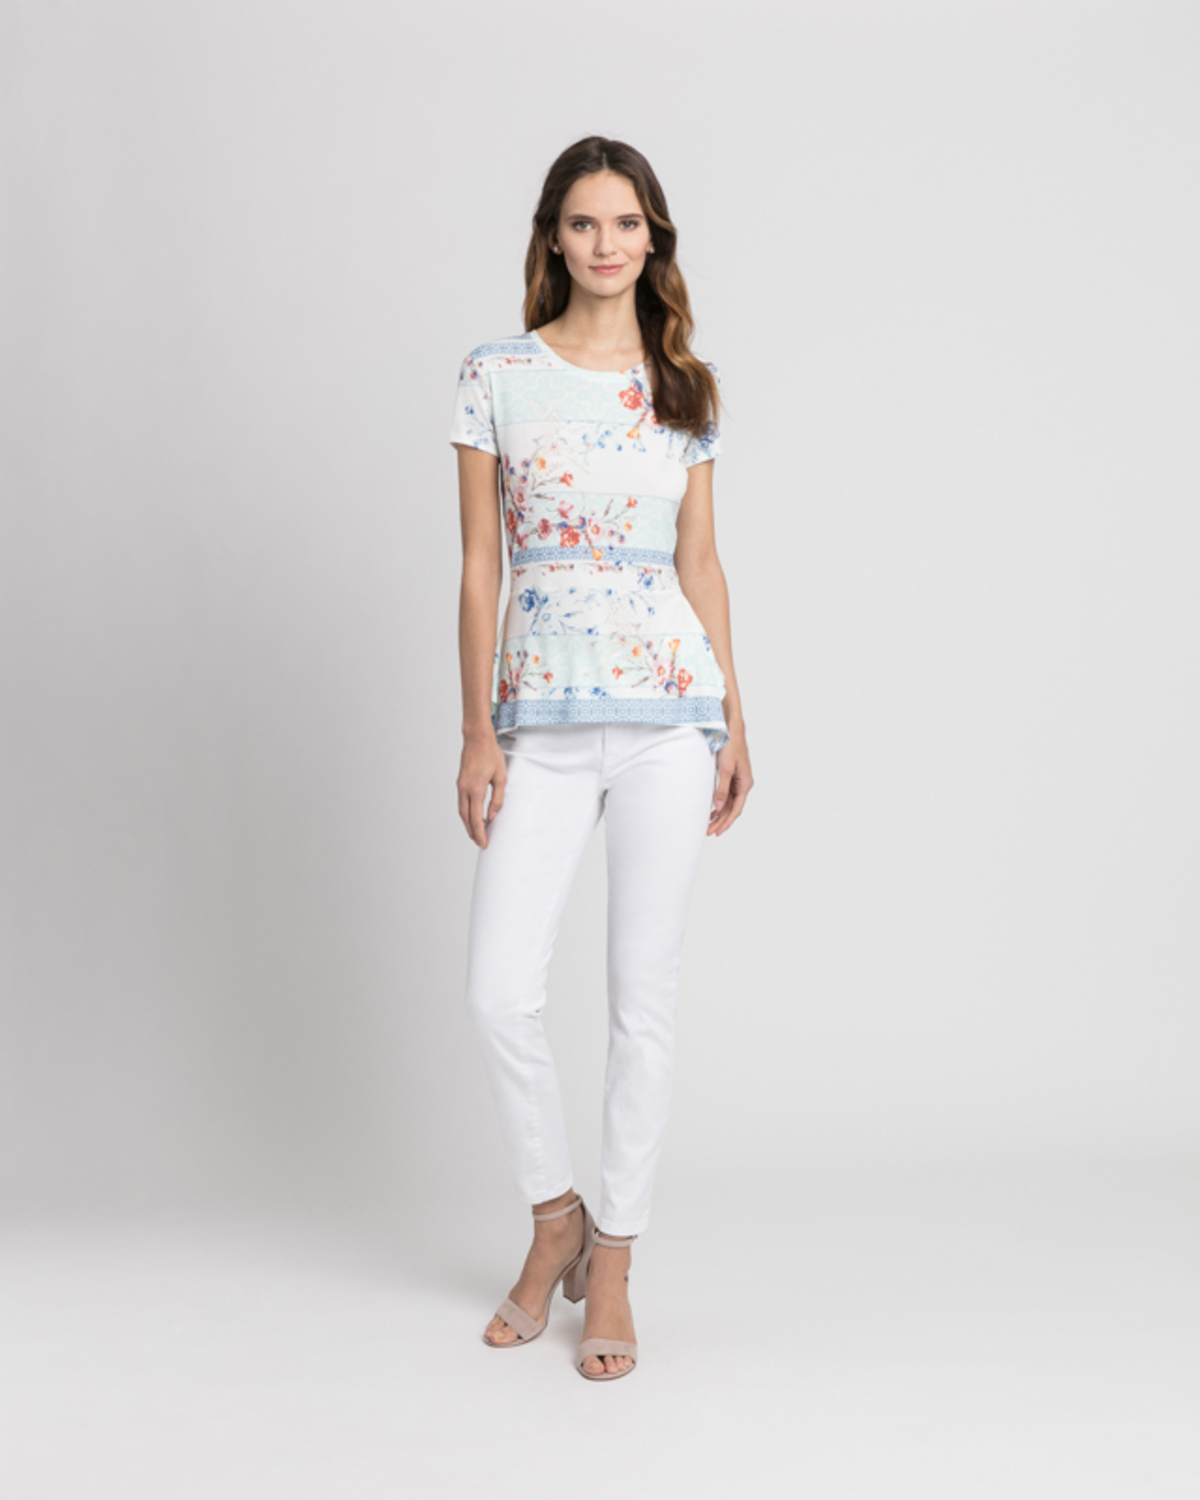 Tile inspired floral tee multicolor front ivanka trump